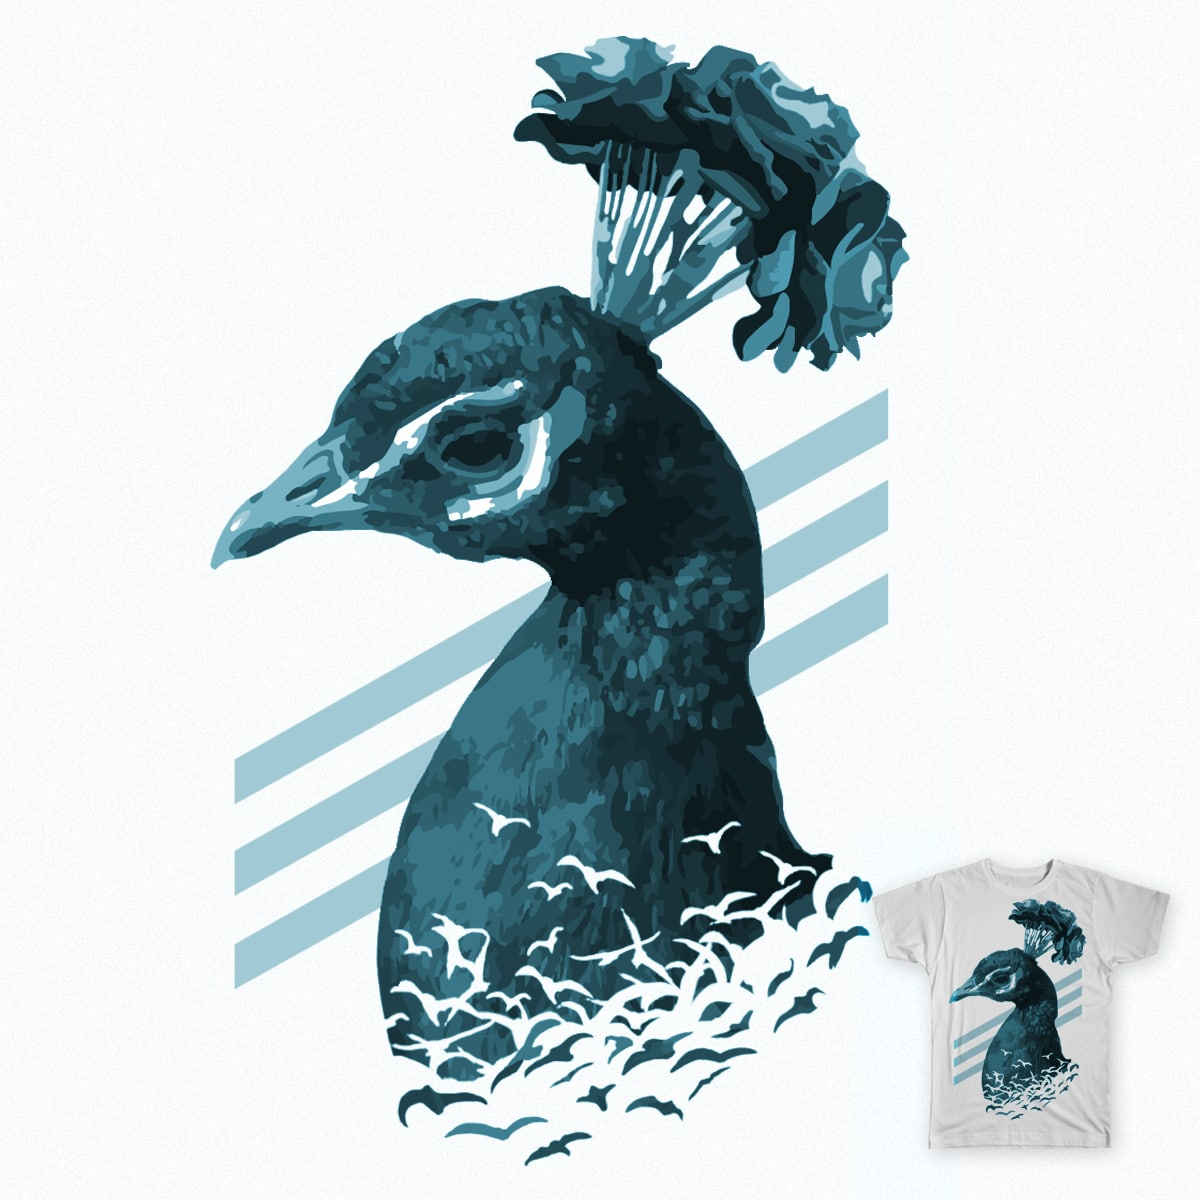 Bird Bouquet by nippyer on Threadless